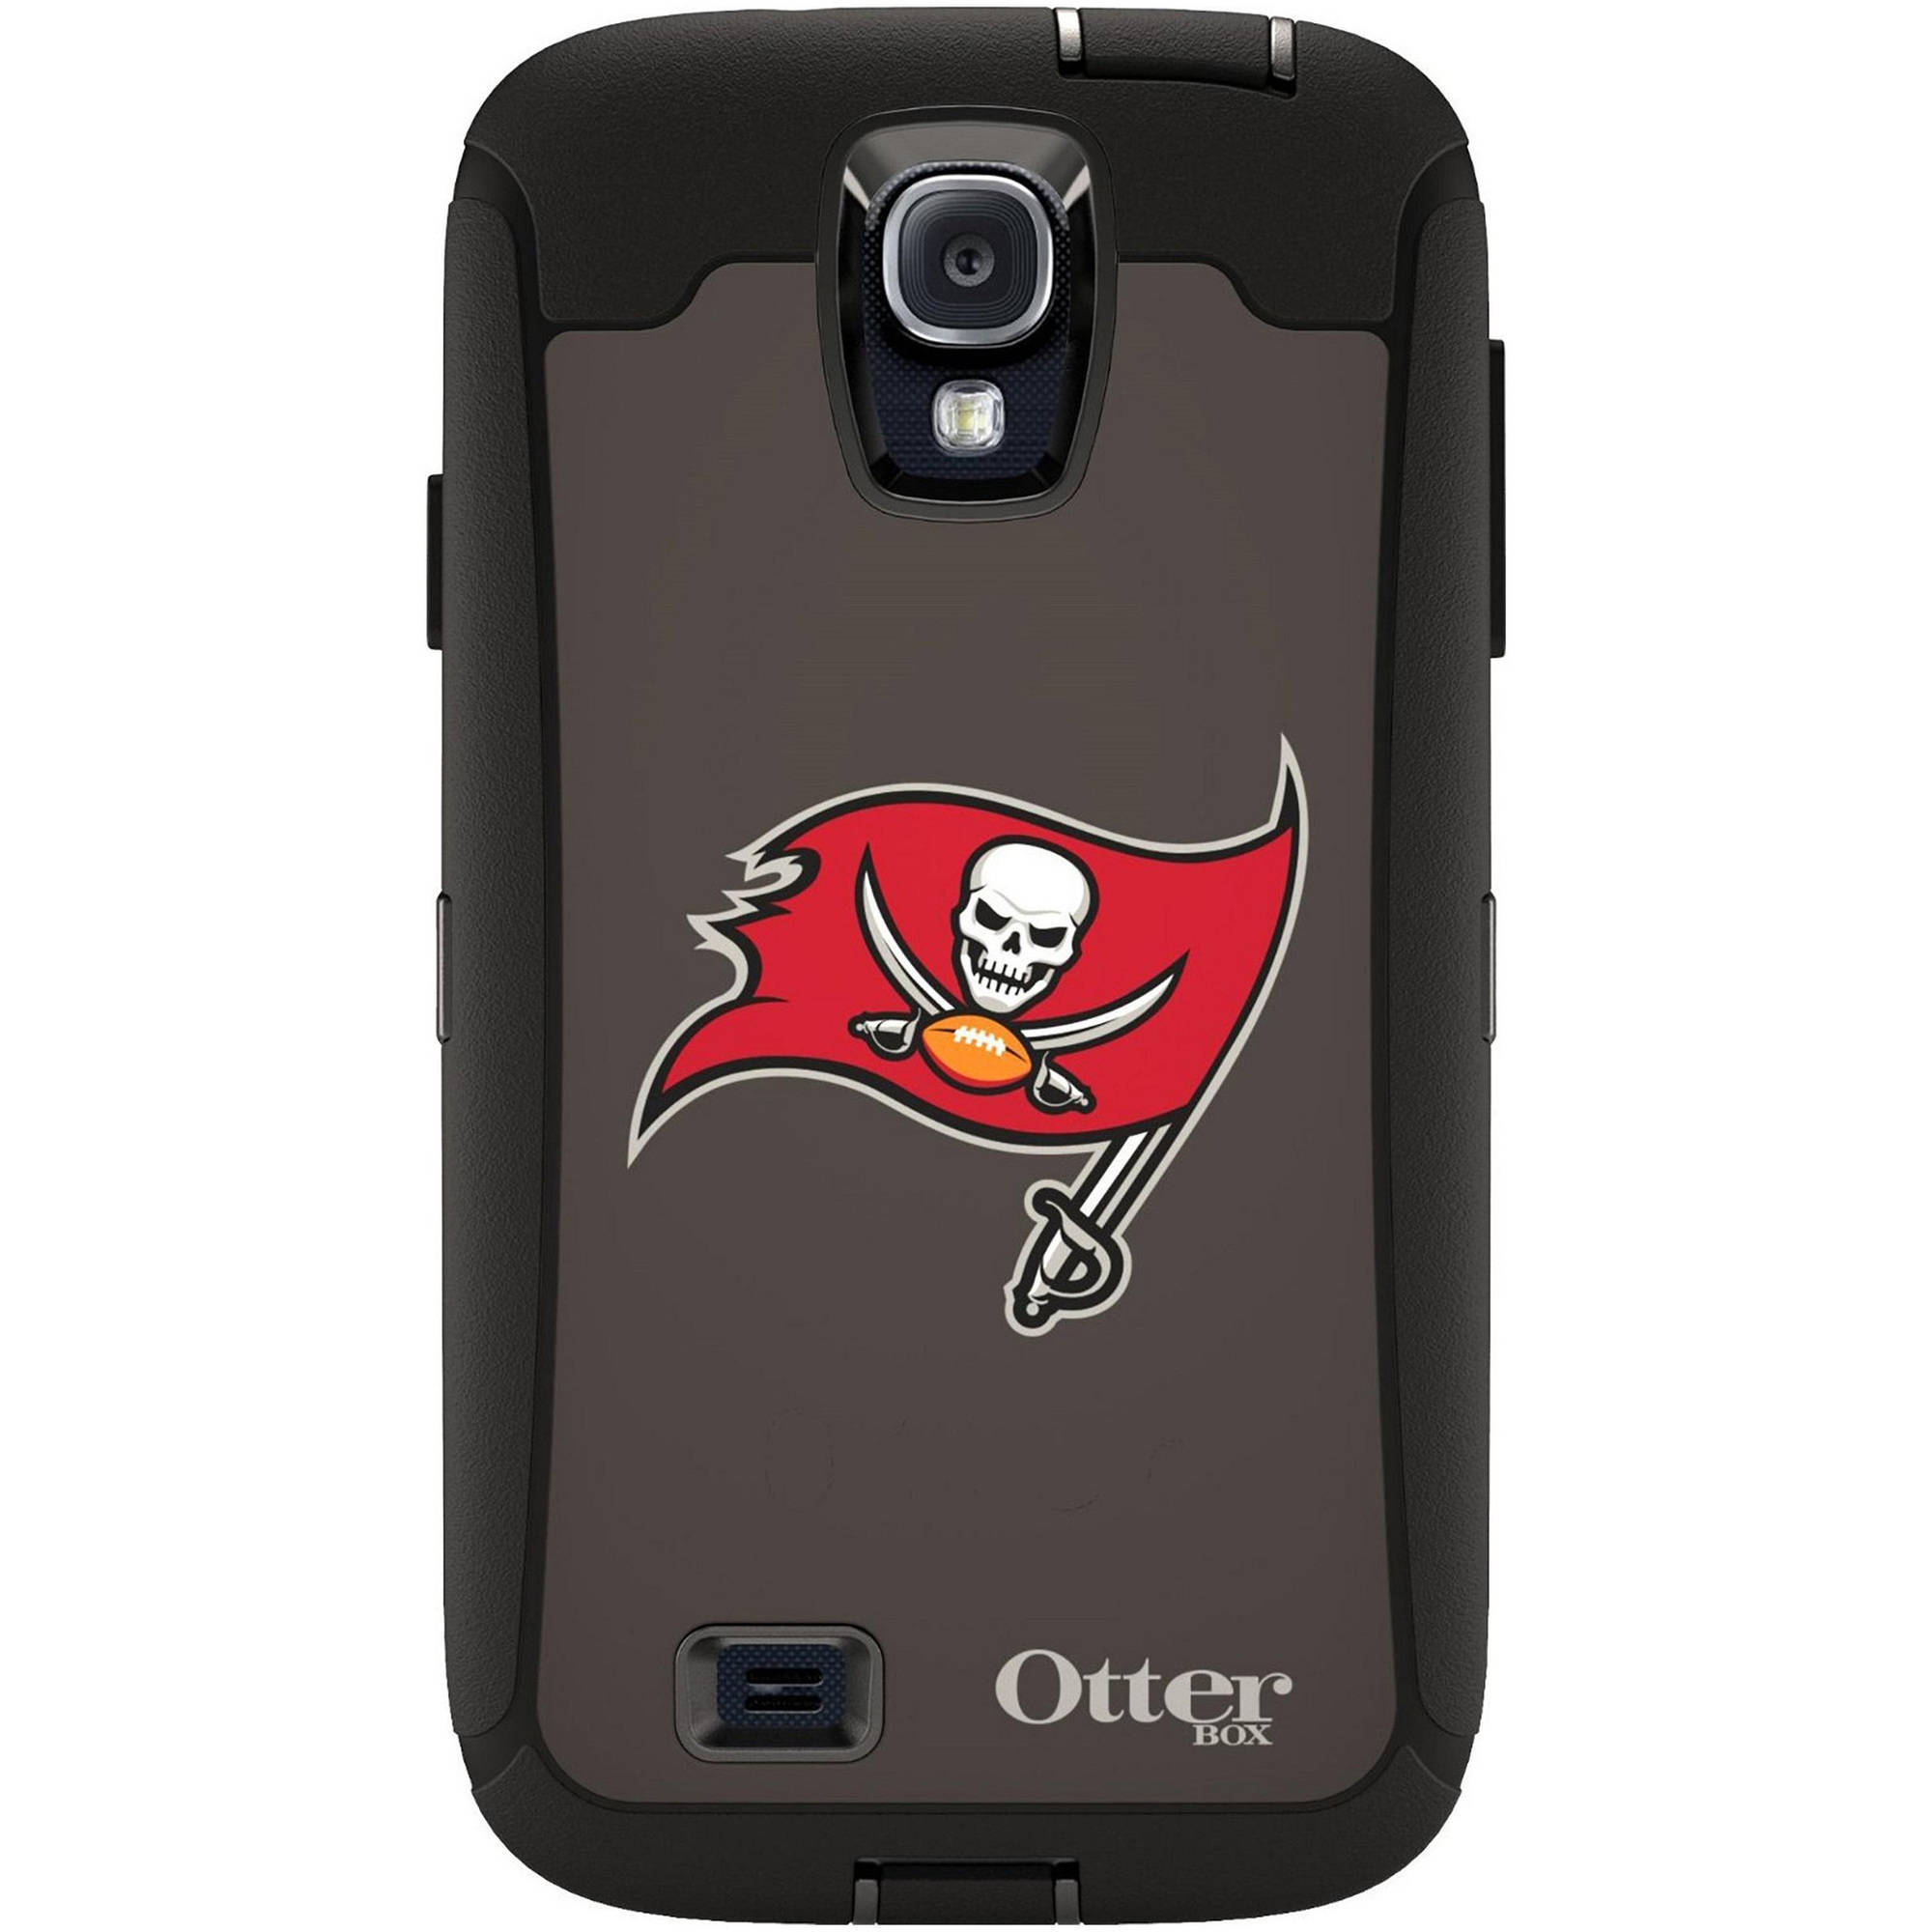 OtterBox Defender NFL Series Case for Samsung Galaxy S4, Buccaneers